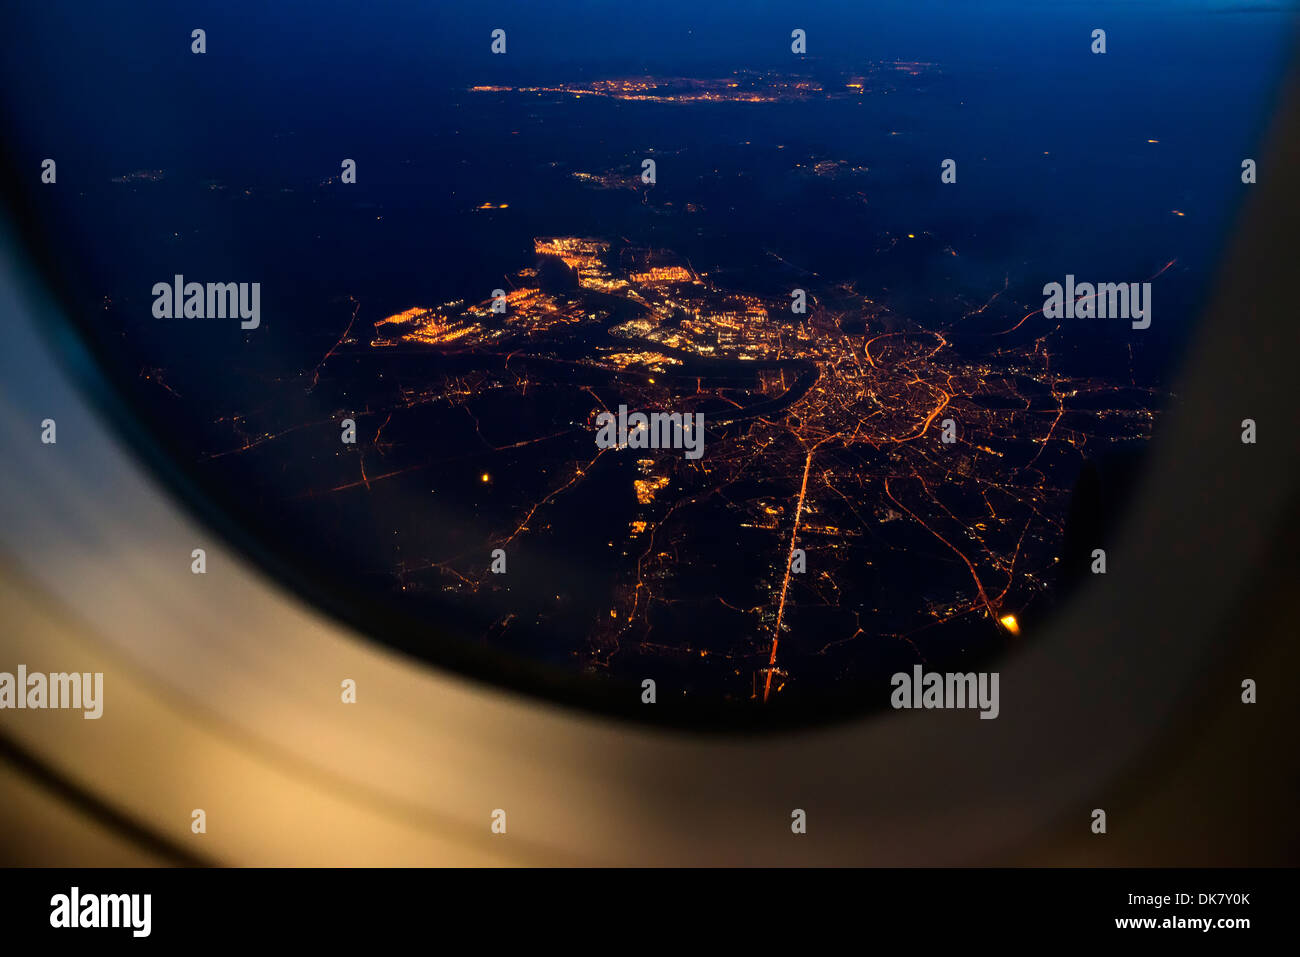 Night View Out Of Airplane Window Stock Photo Alamy